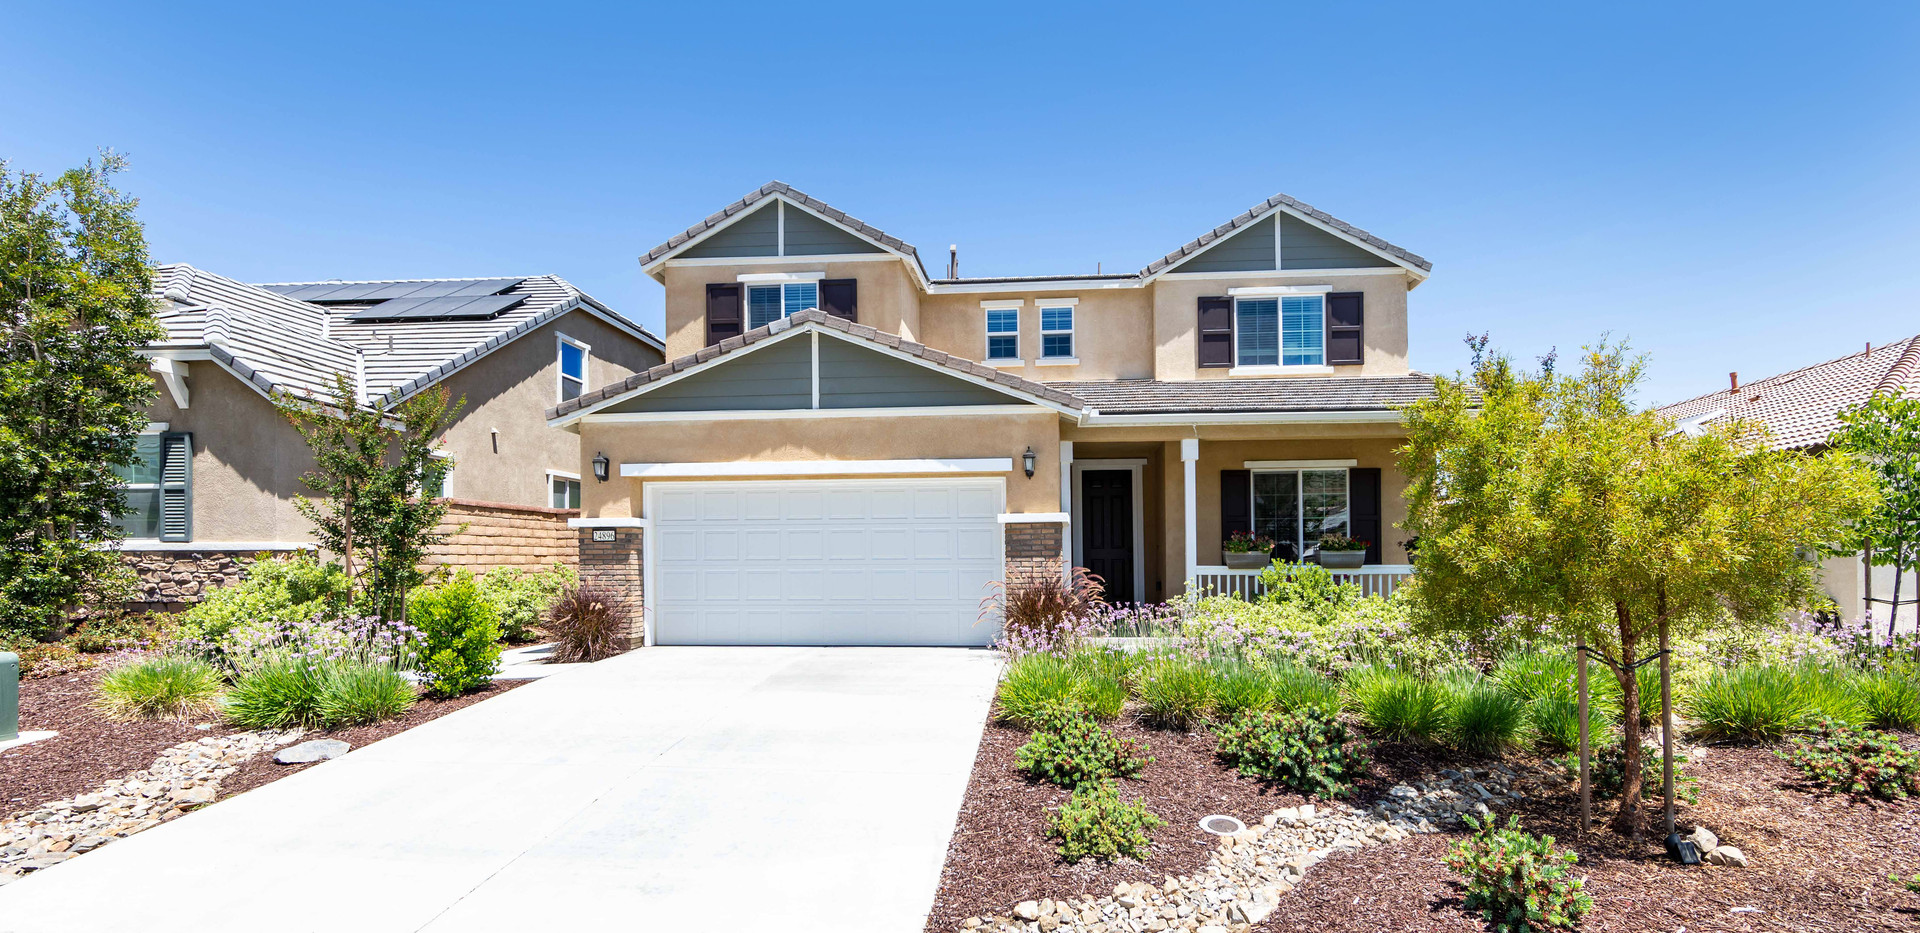 24896 Coldwater Canyon Tr-ext-1.jpg